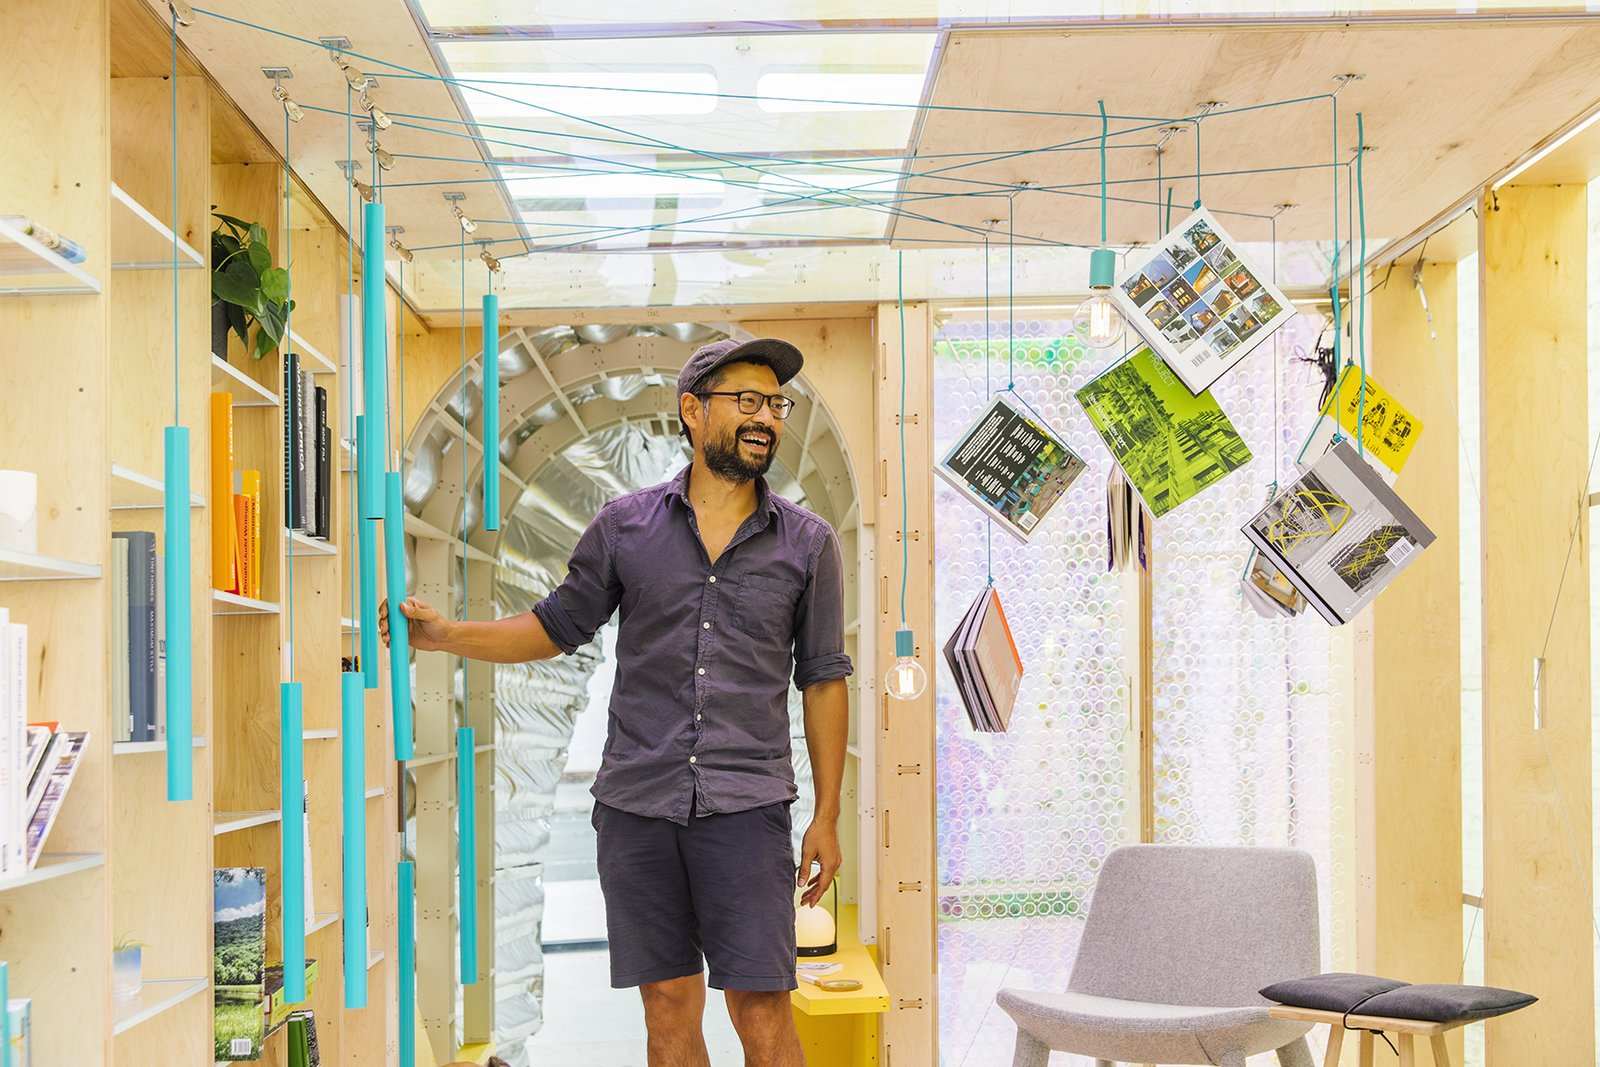 """The home's """"library"""" features books hanging from the ceiling via a stylish turquoise counterweight.  Photo 6 of 9 in A Vibrant Cabin in NYC Explores the Future of Urban Living"""